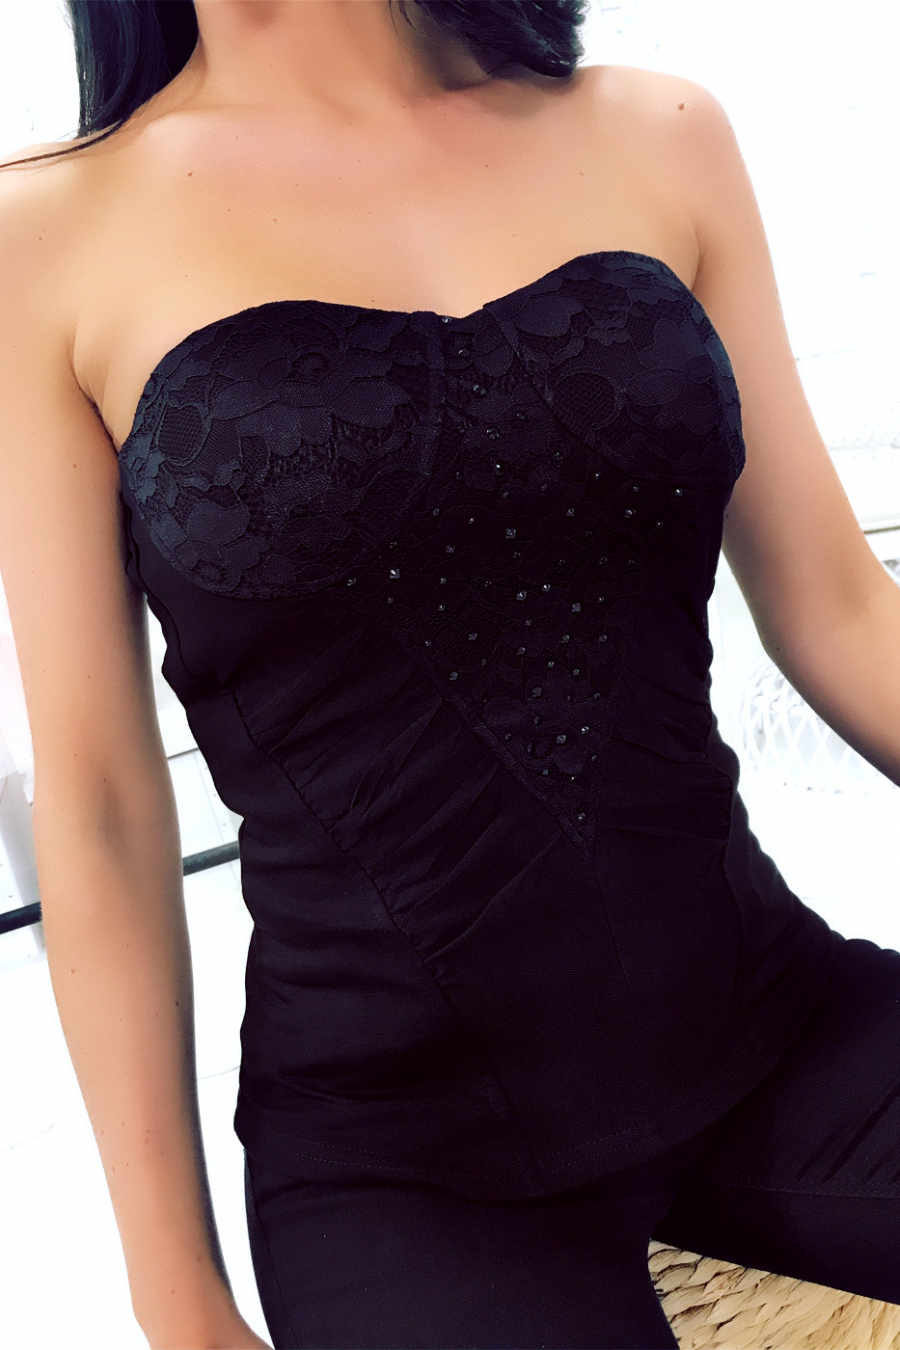 Black bustier top, rhinestones and lace. 2873